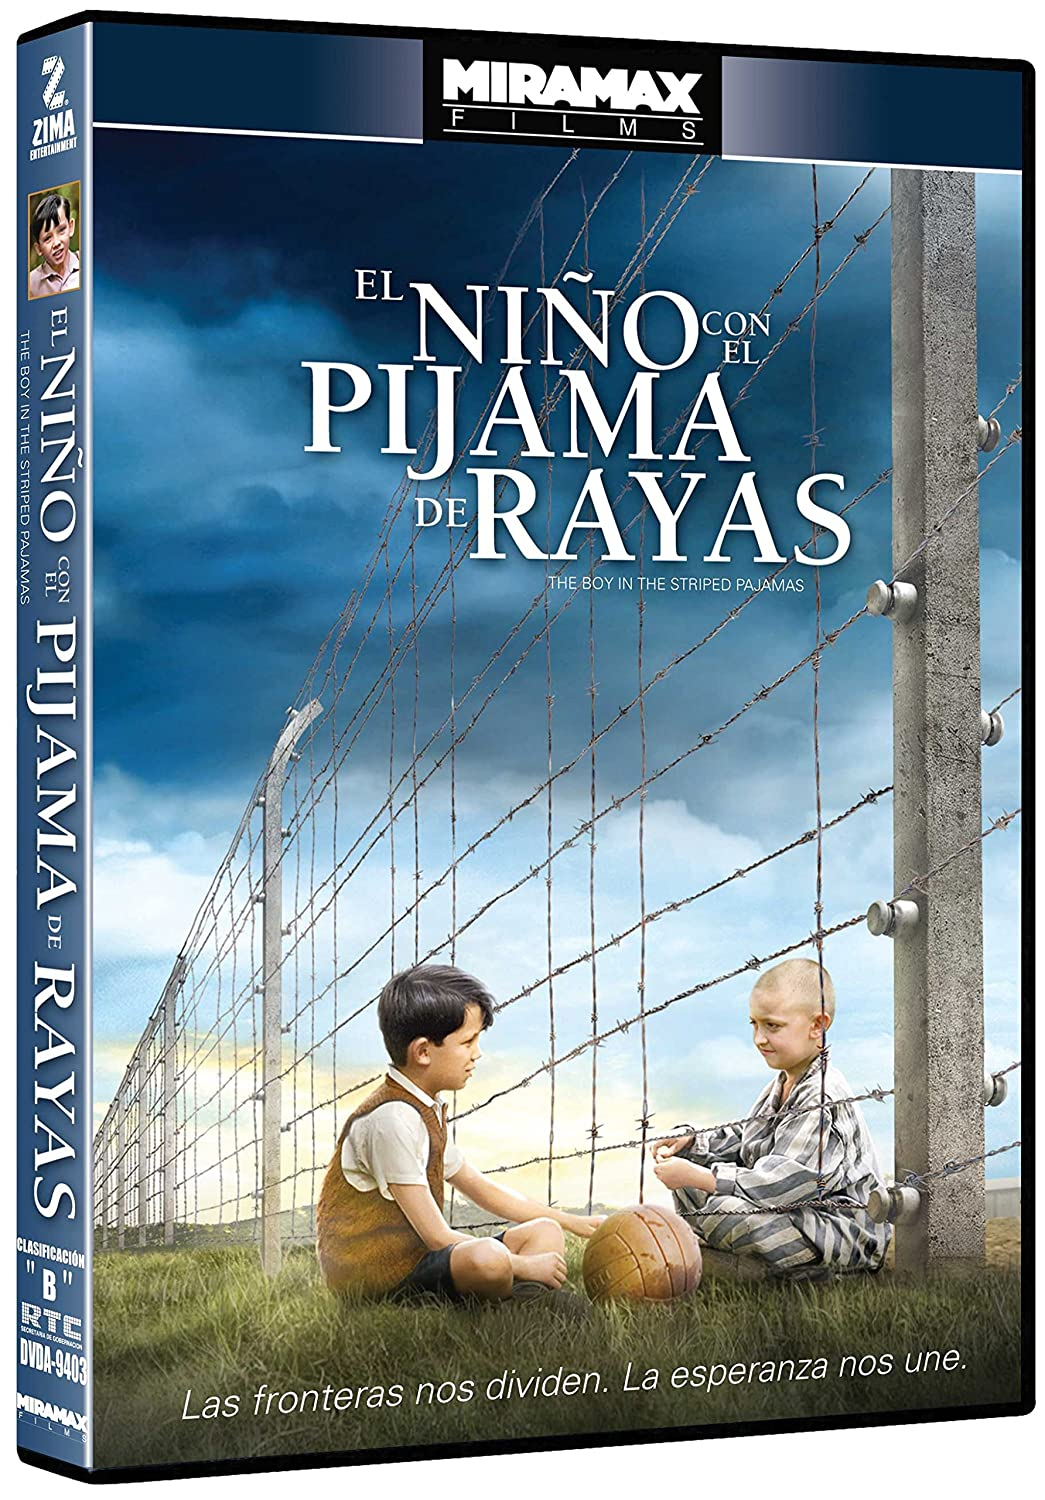 com el ni ntilde o con el pijama de rayas the boy in the com el nintildeo con el pijama de rayas the boy in the stripped pajamas vera farmiga mark herman movies tv